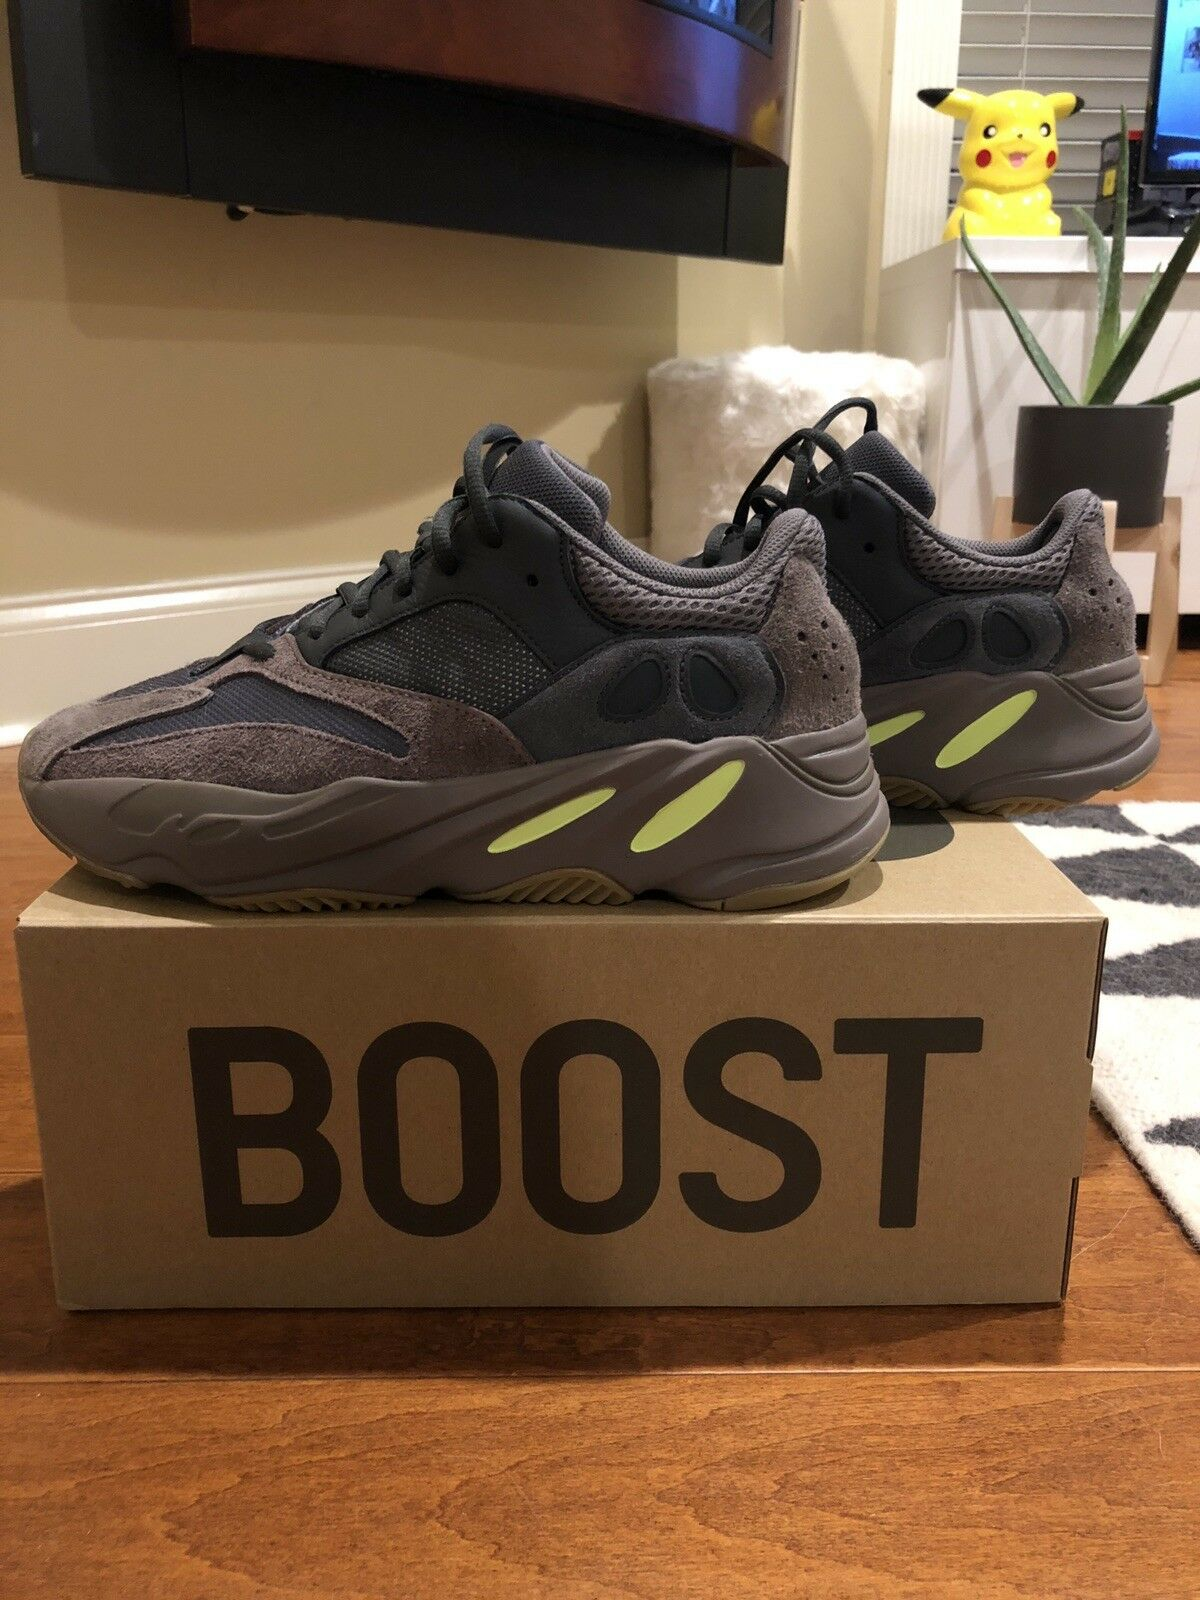 Authentique Yeezy Boost 700 mauve taille 10.5, BRAND NEW